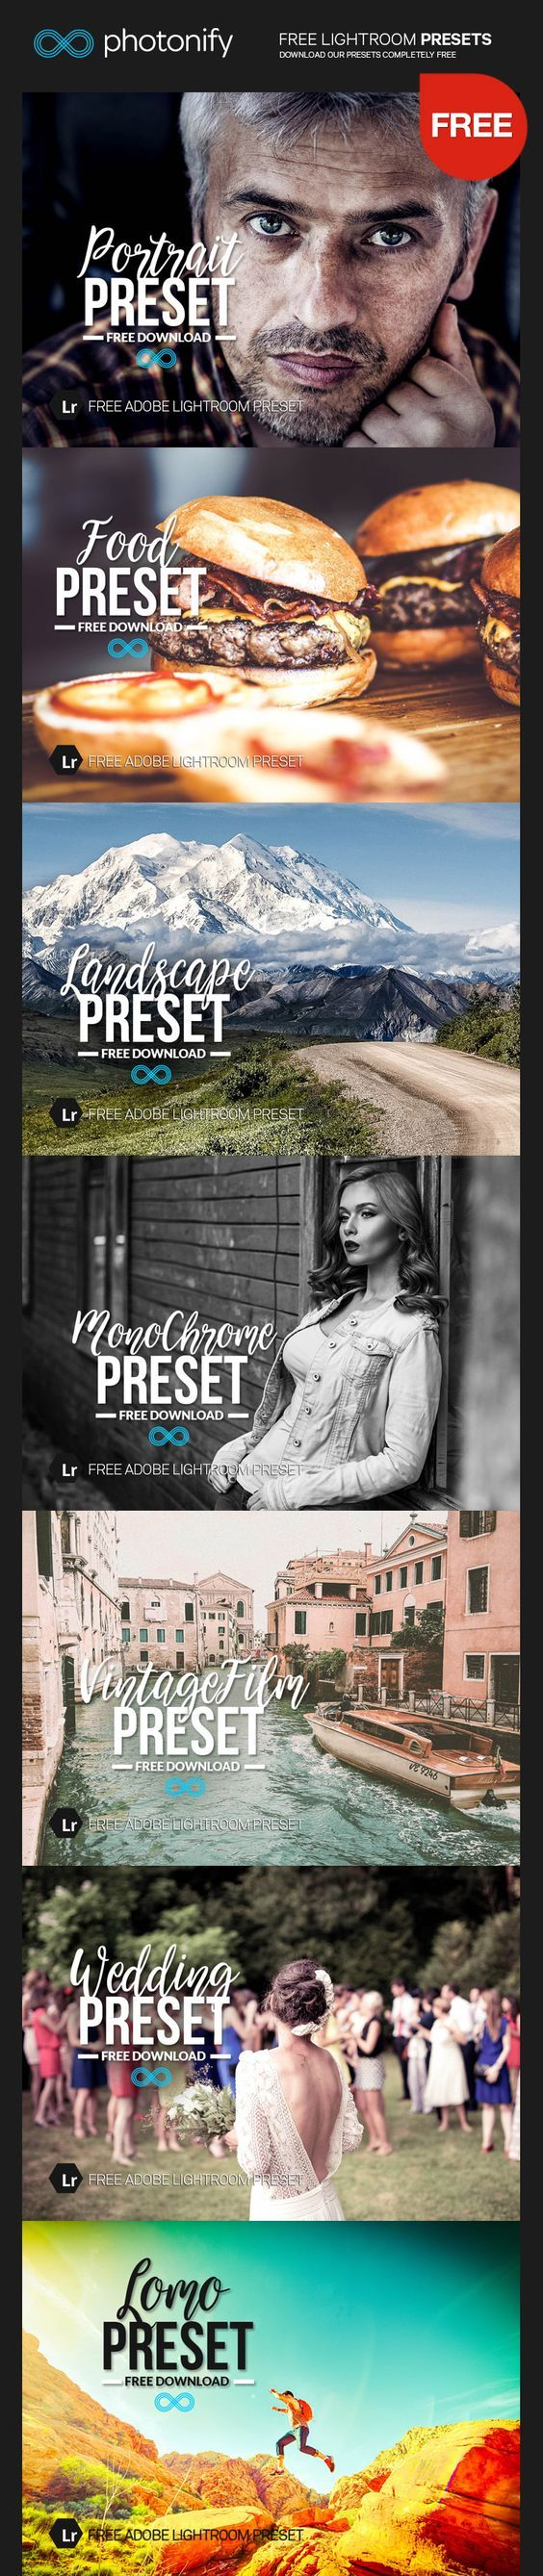 Free Lightroom Presets - Download a Collection of Presets 100% FREE.